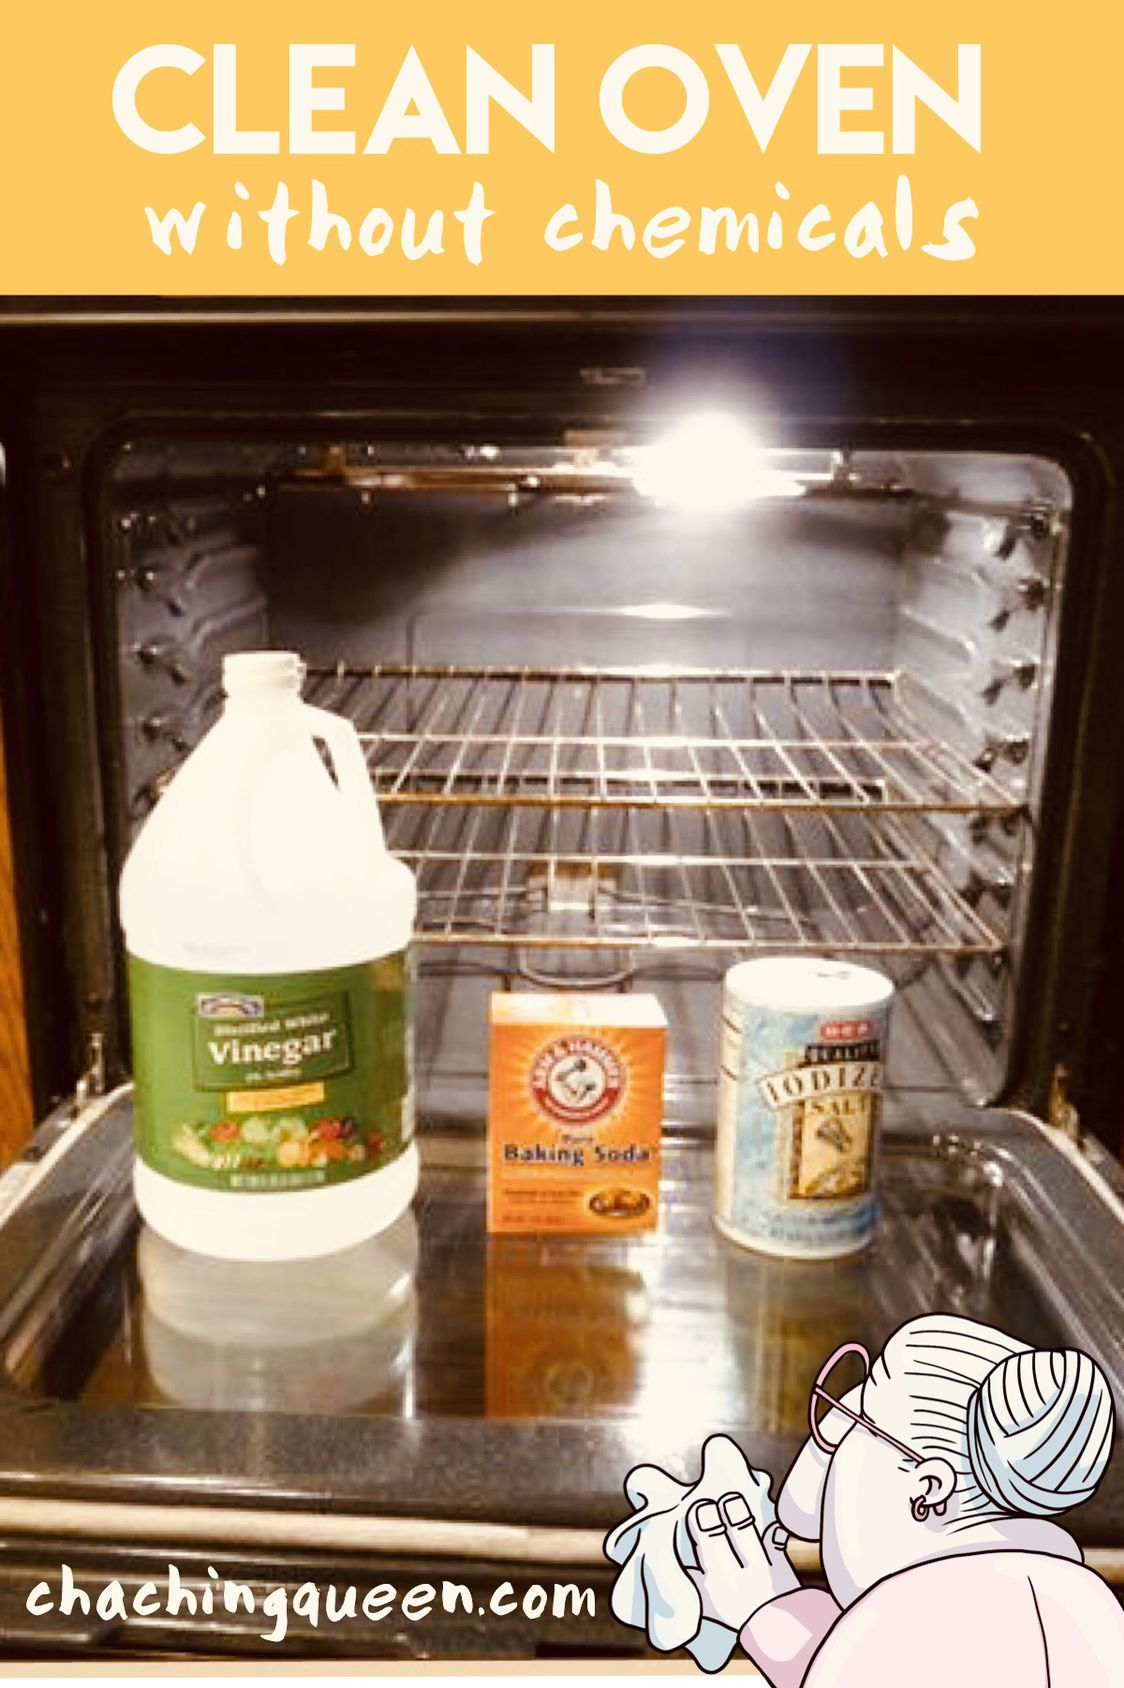 How To Clean Your Oven Without Chemicals Cleaning Ovens With Vinegar And Baking Soda Entertaining Parties Holidays Cooking Kitchen